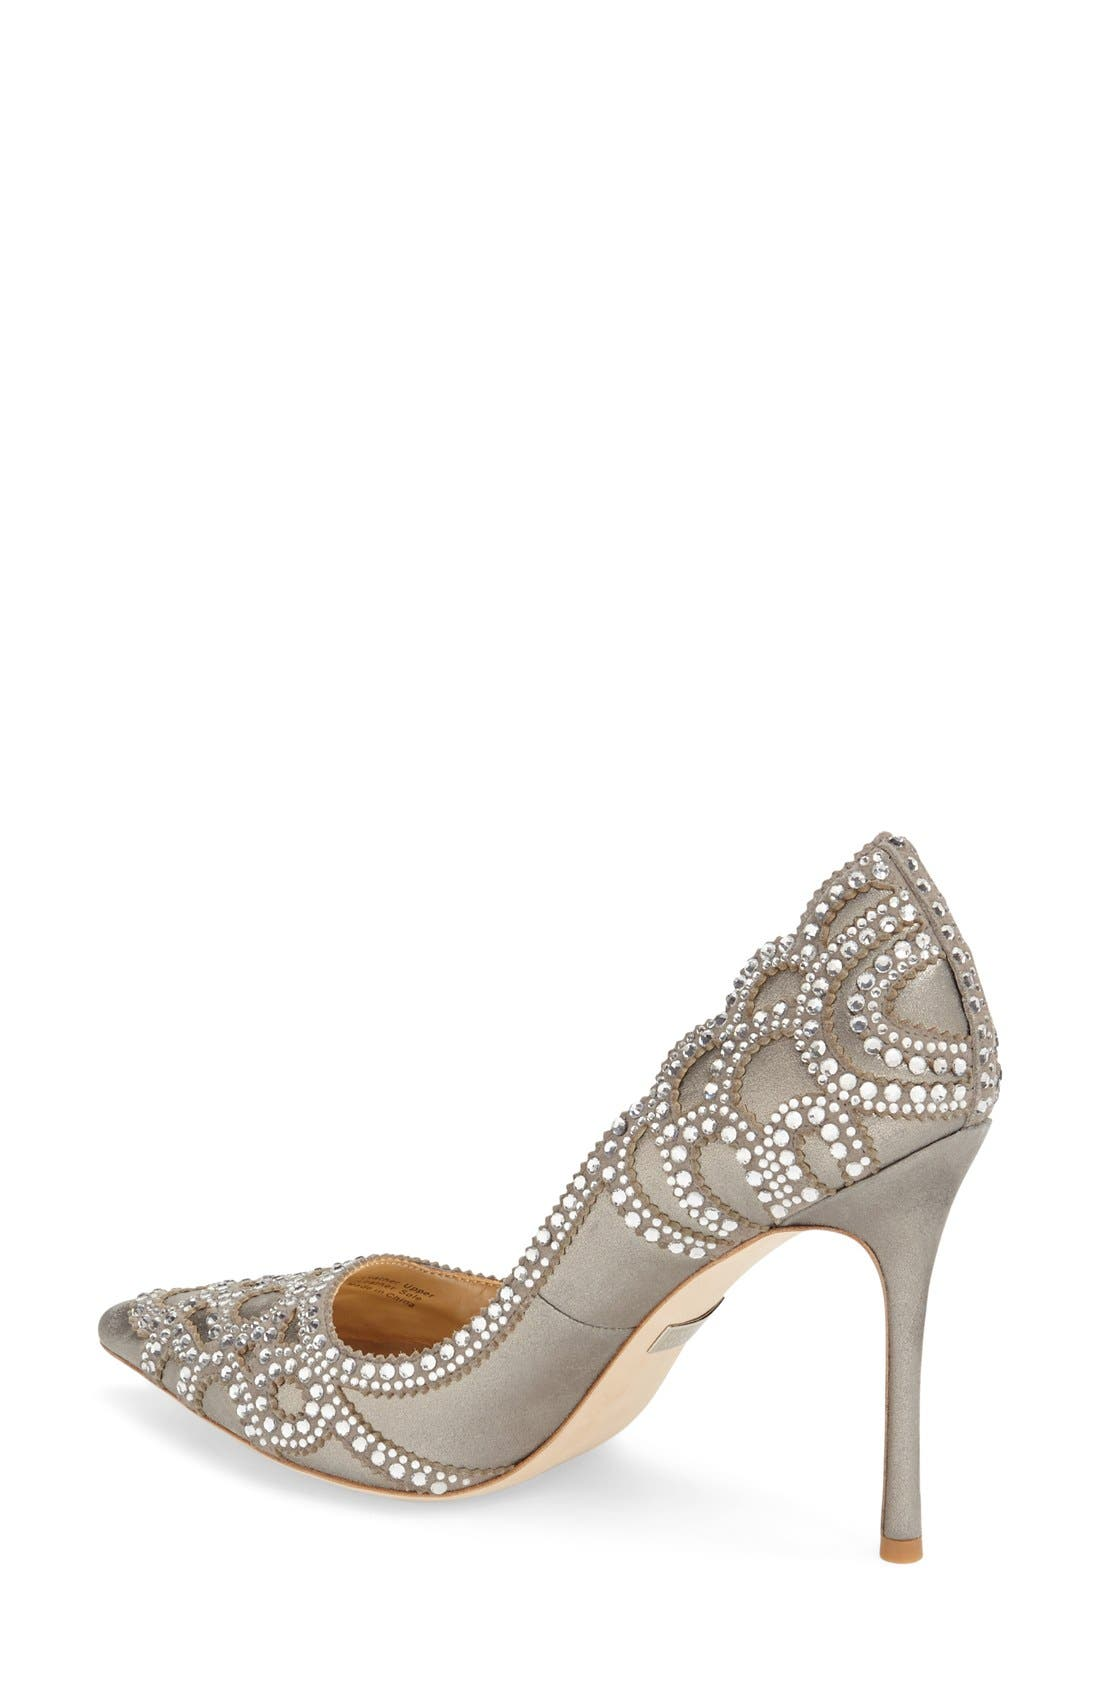 Badgley Mischka 'Rouge II' Crystal Pointy Toe Pump,                             Alternate thumbnail 2, color,                             040